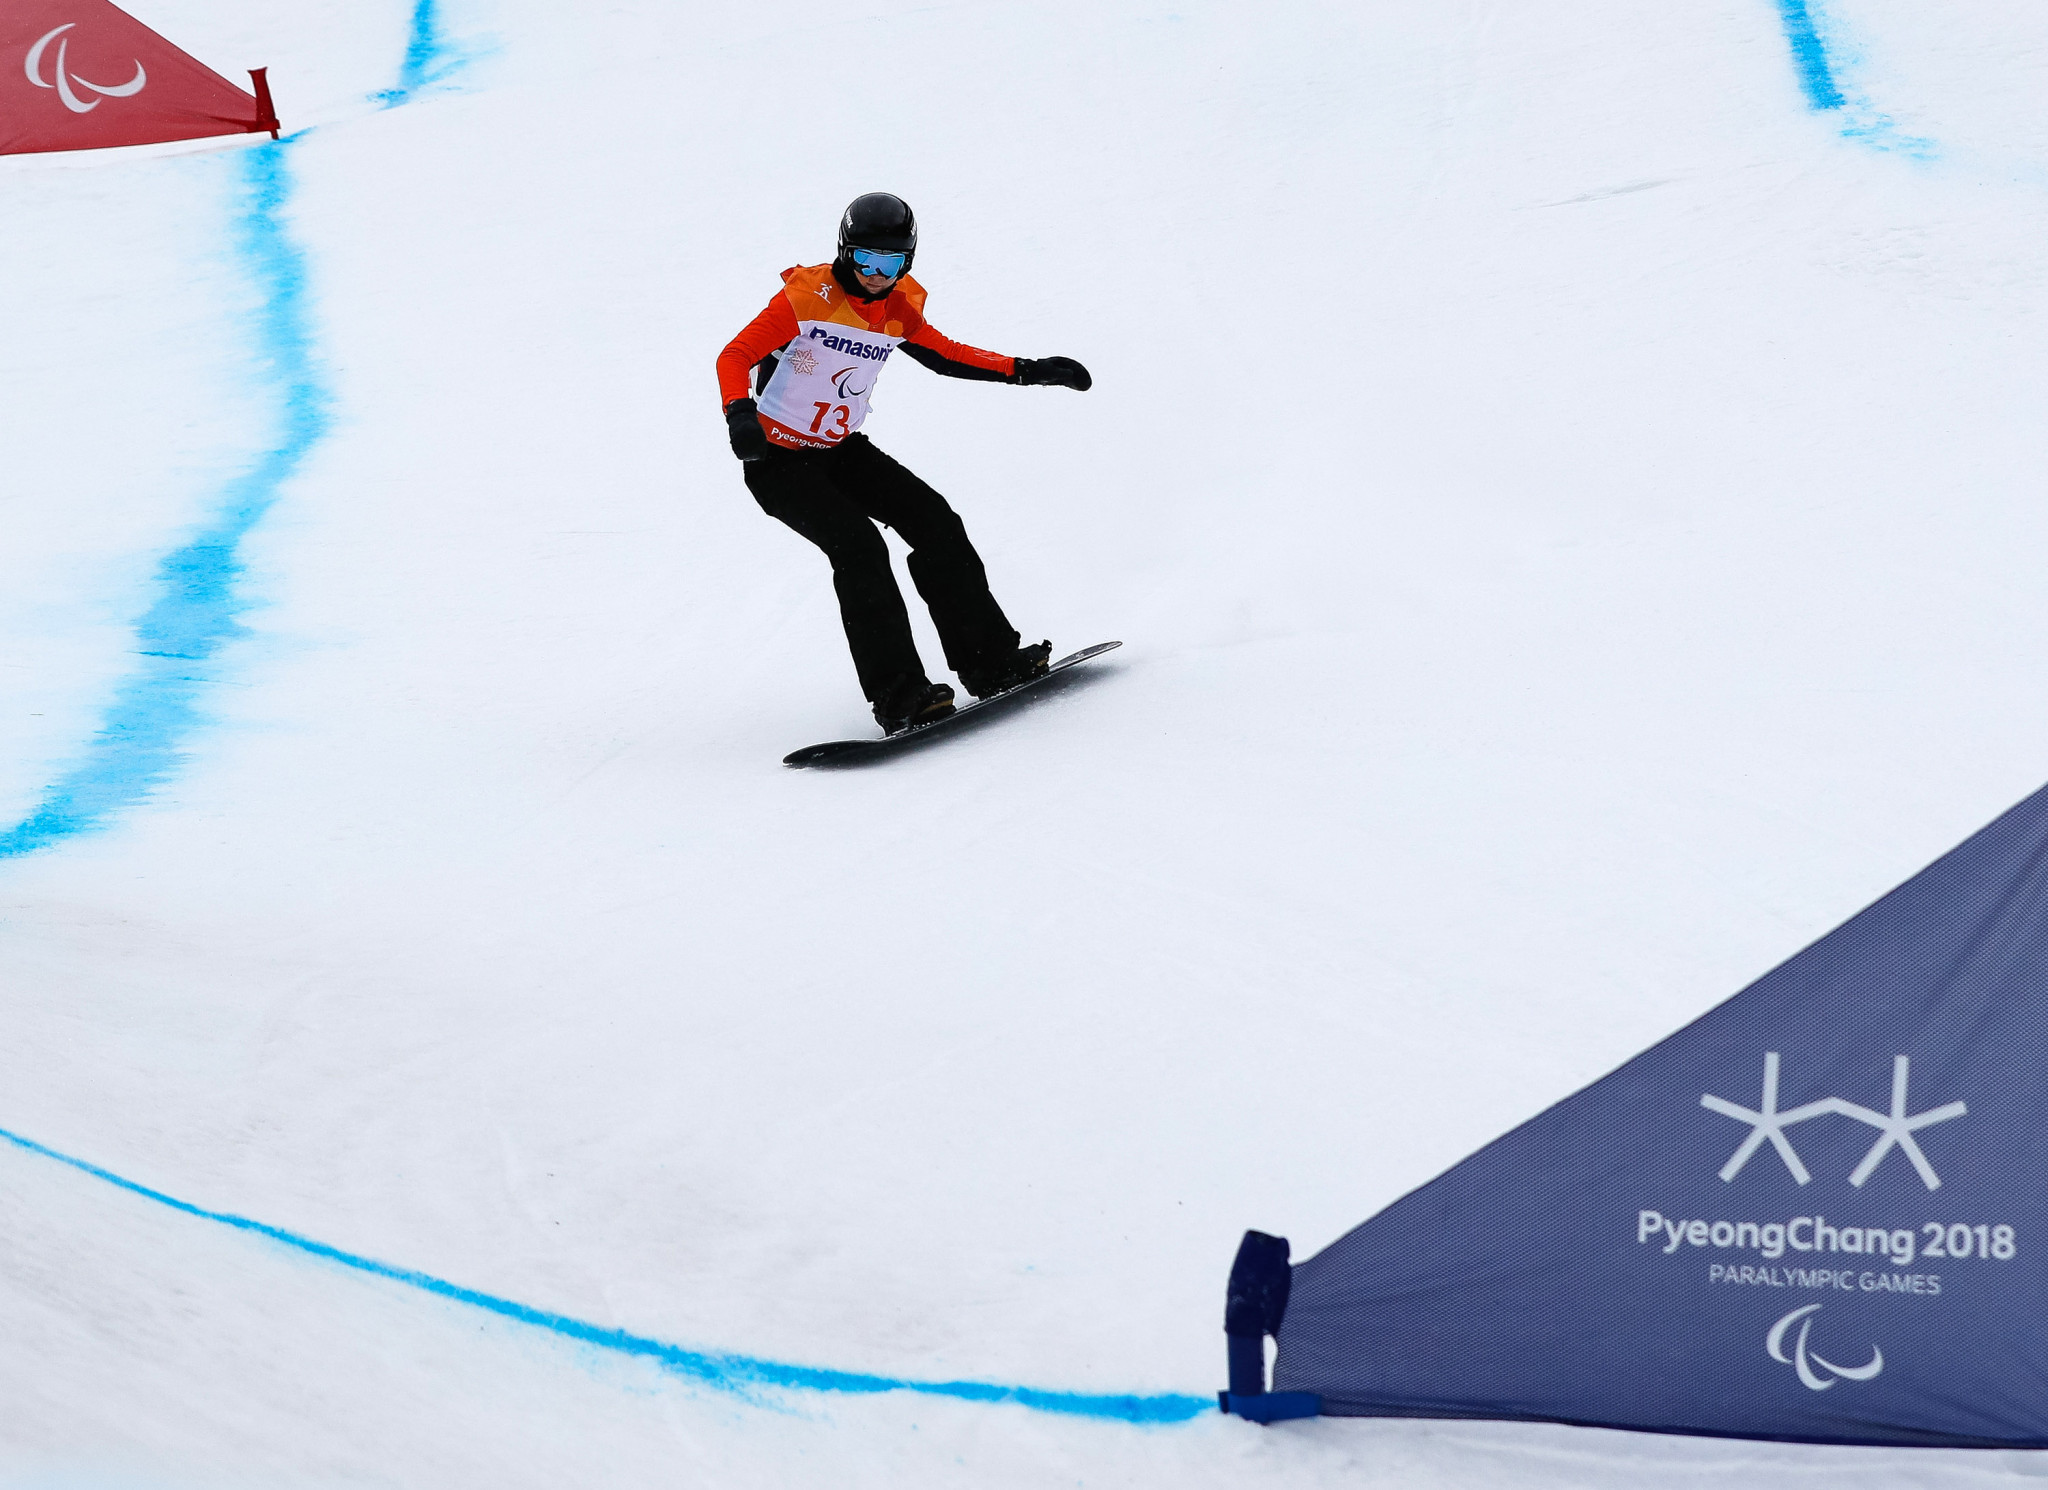 Dutch Para-snowboarder Lisa Bunschoten has been voted the IPC Allianz Athlete of the Month for March after securing her first major career titles ©Getty Images